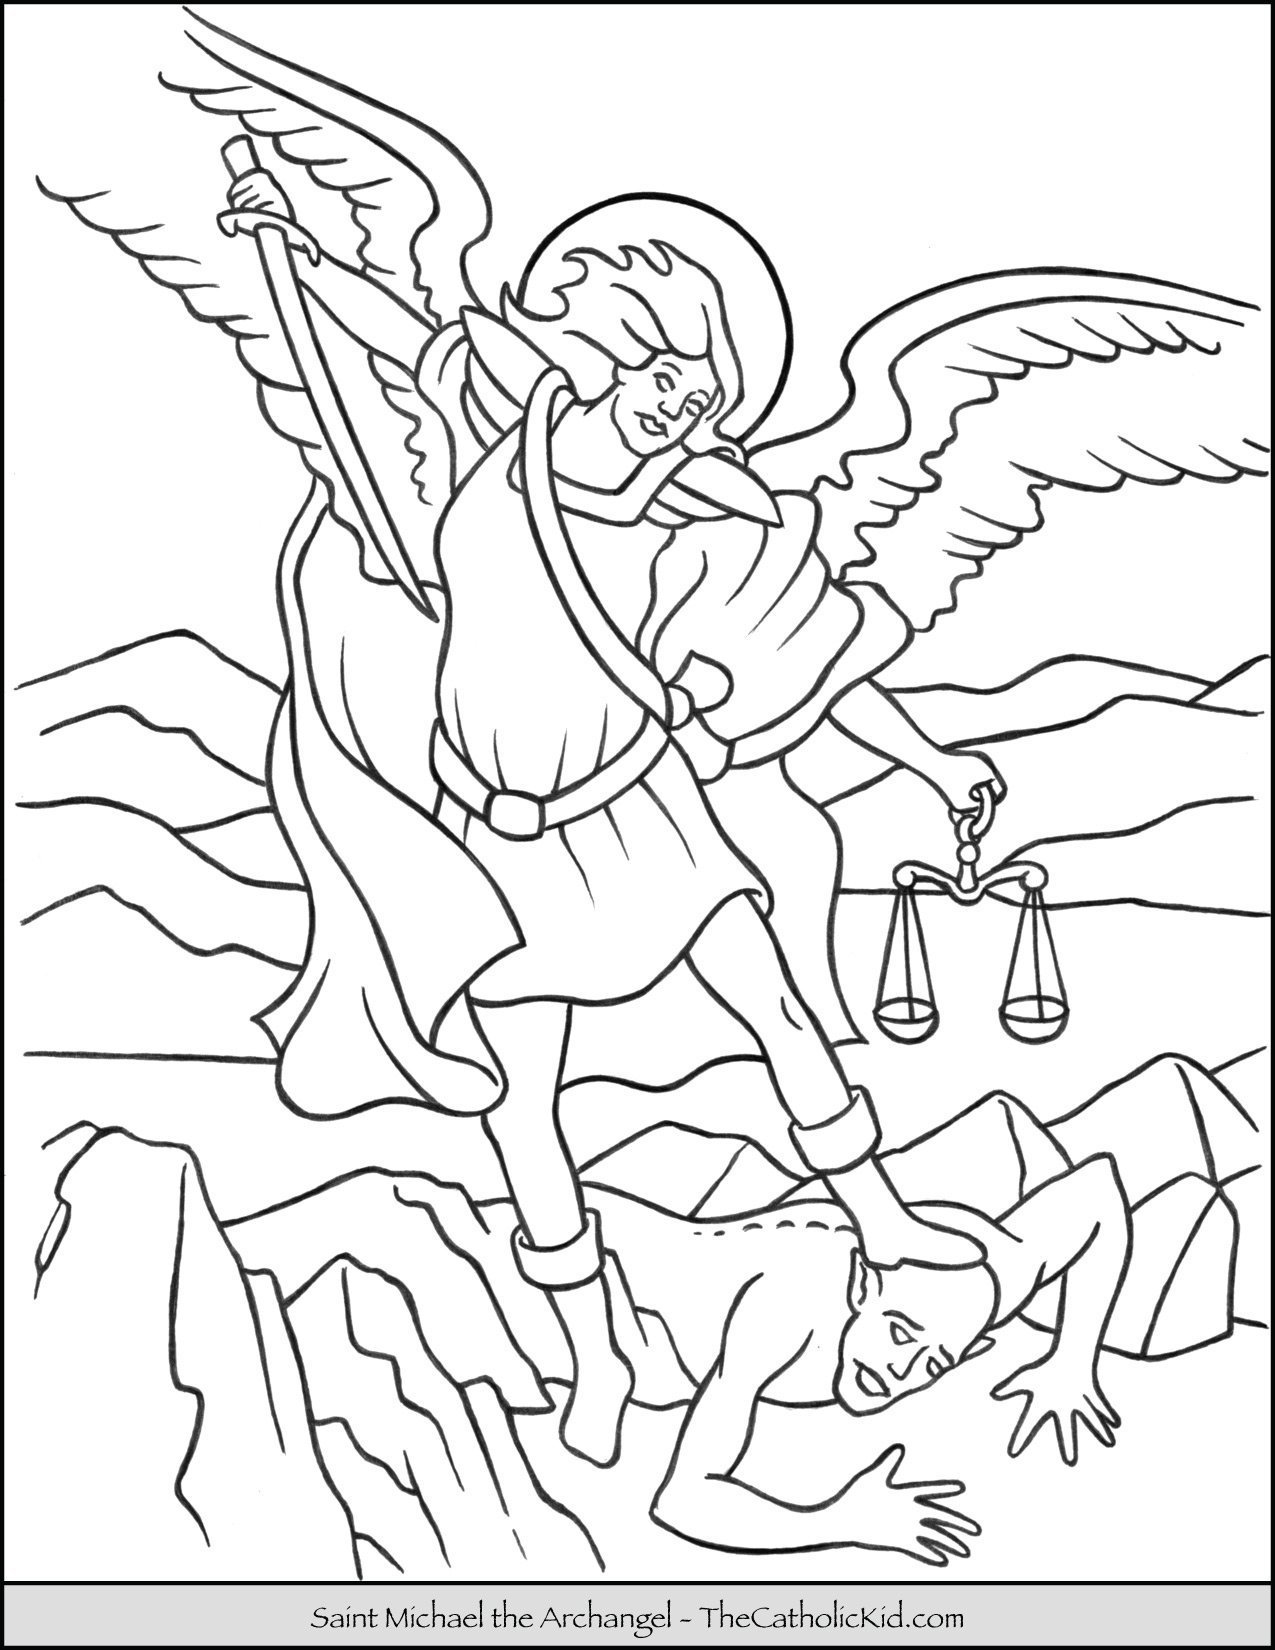 Saint Michael Archangel Coloring Page